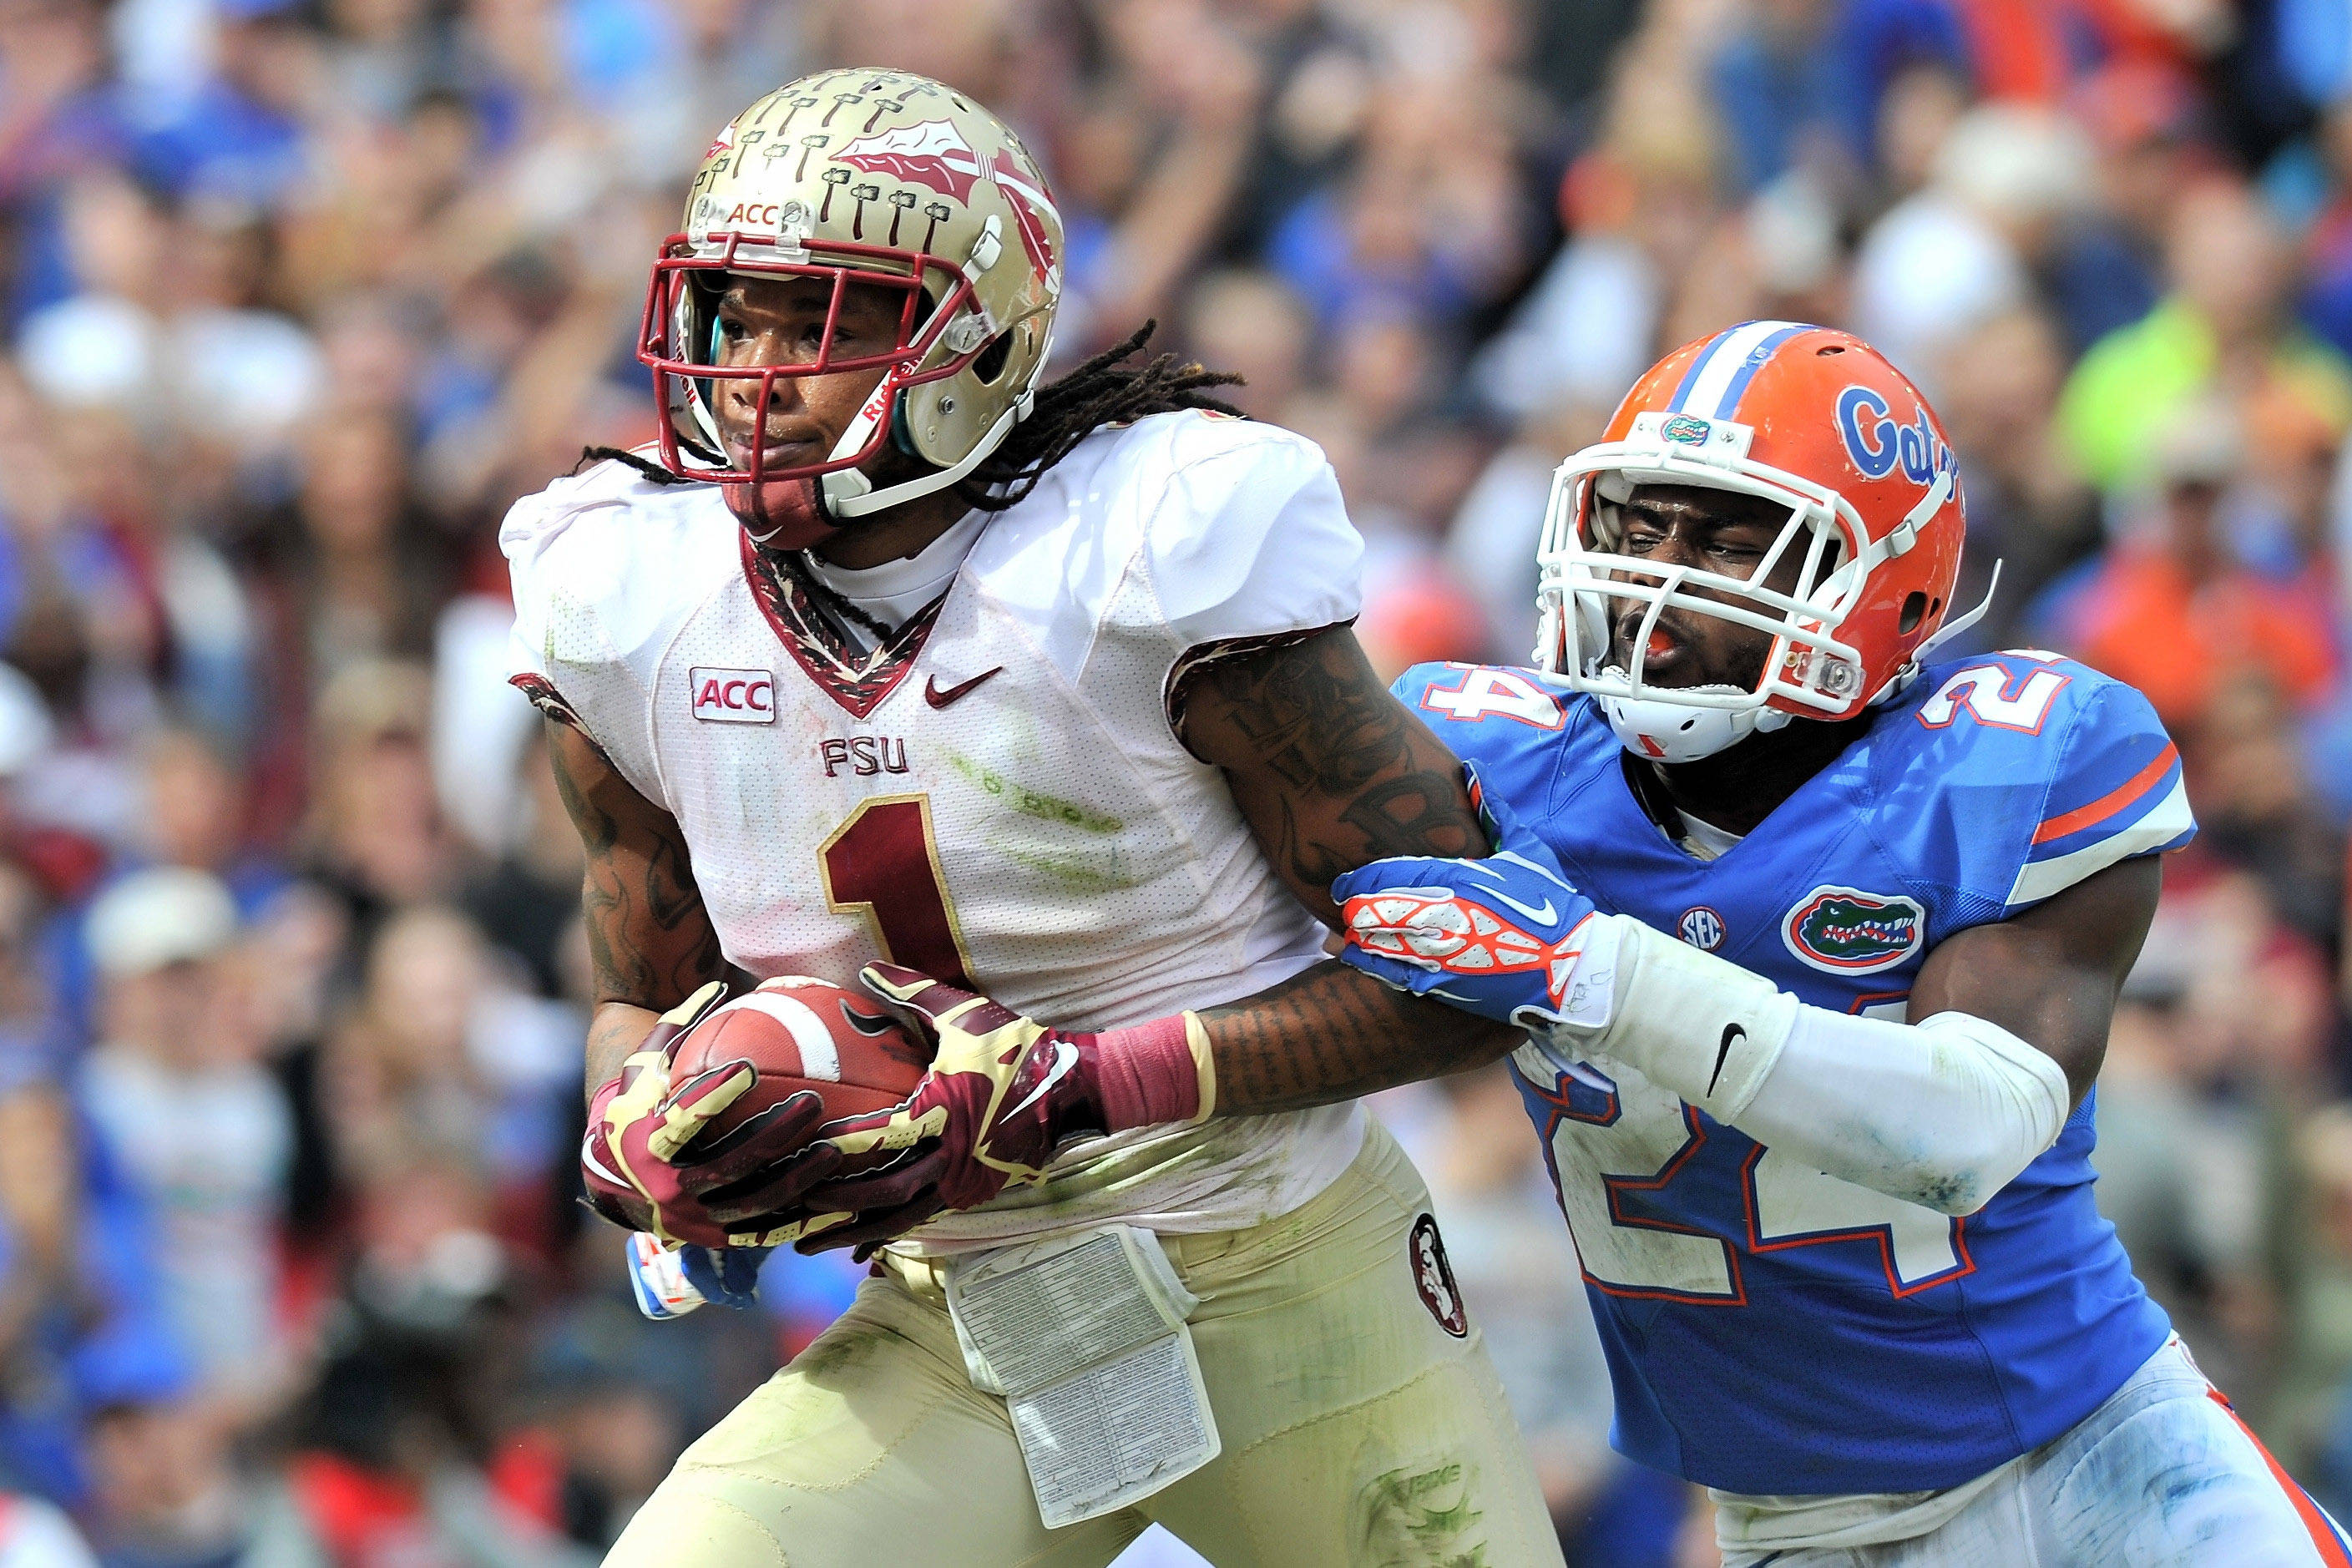 Kelvin Benjamin (1) runs in a touchdown as Florida Gators defensive back Brian Poole (24) defends. Mandatory Credit: Steve Mitchell-USA TODAY Sports